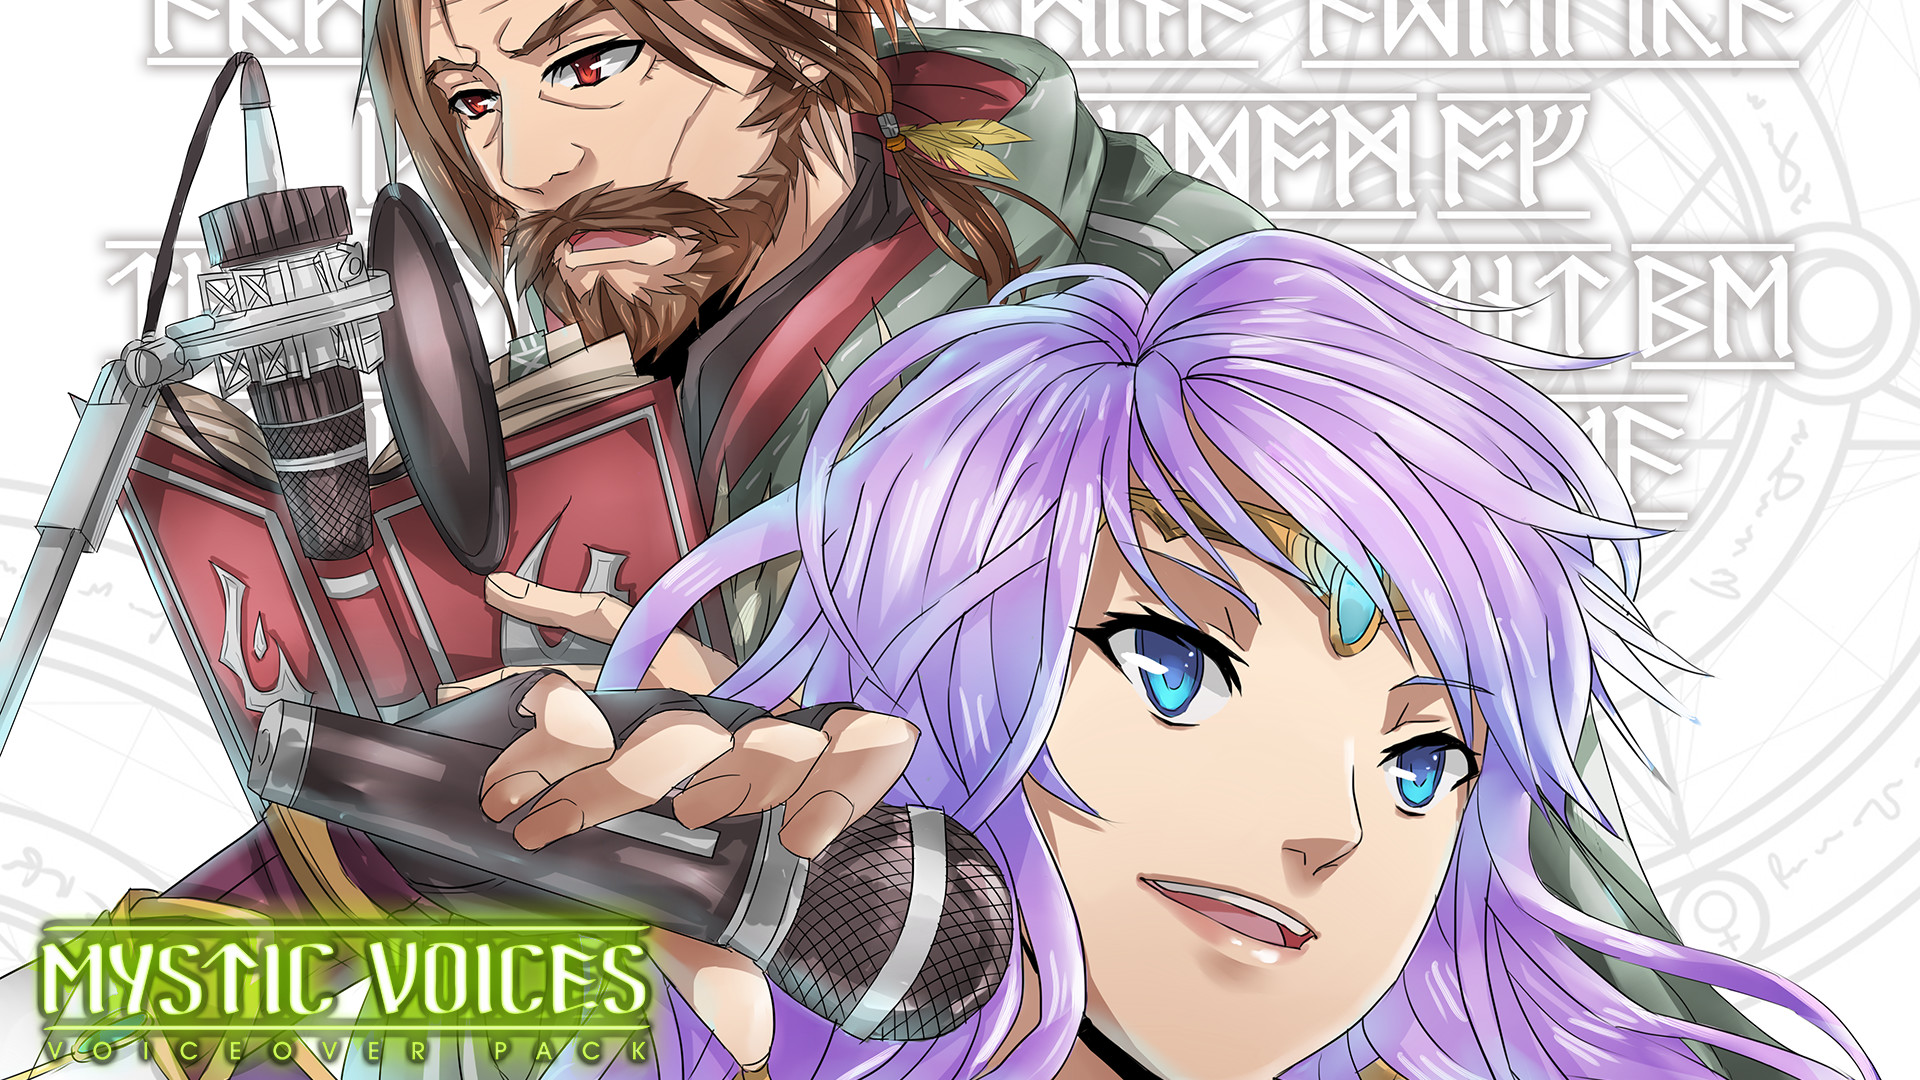 RPG Maker VX Ace - Mystic Voices Sound Pack screenshot